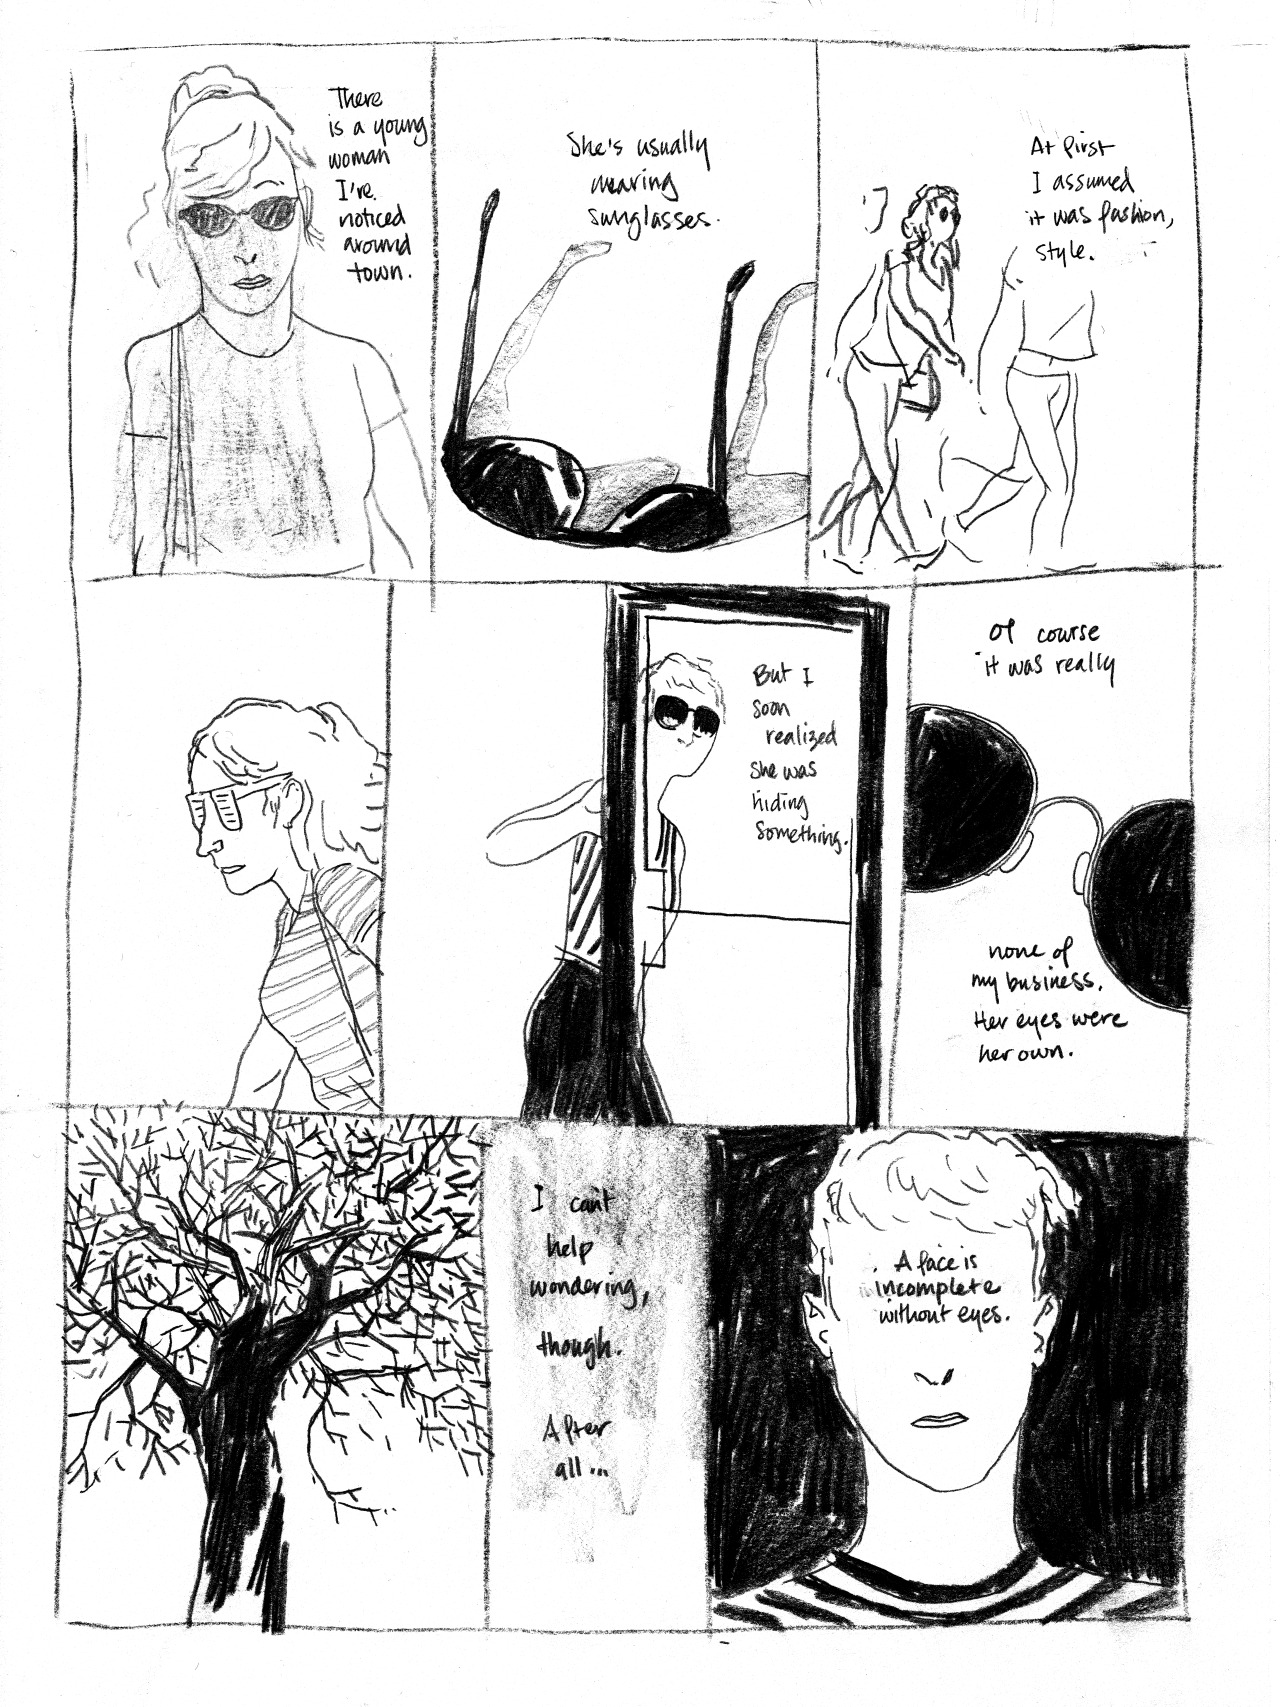 In Pieces: Someplace Which I Call Home (2/4) - Page 1